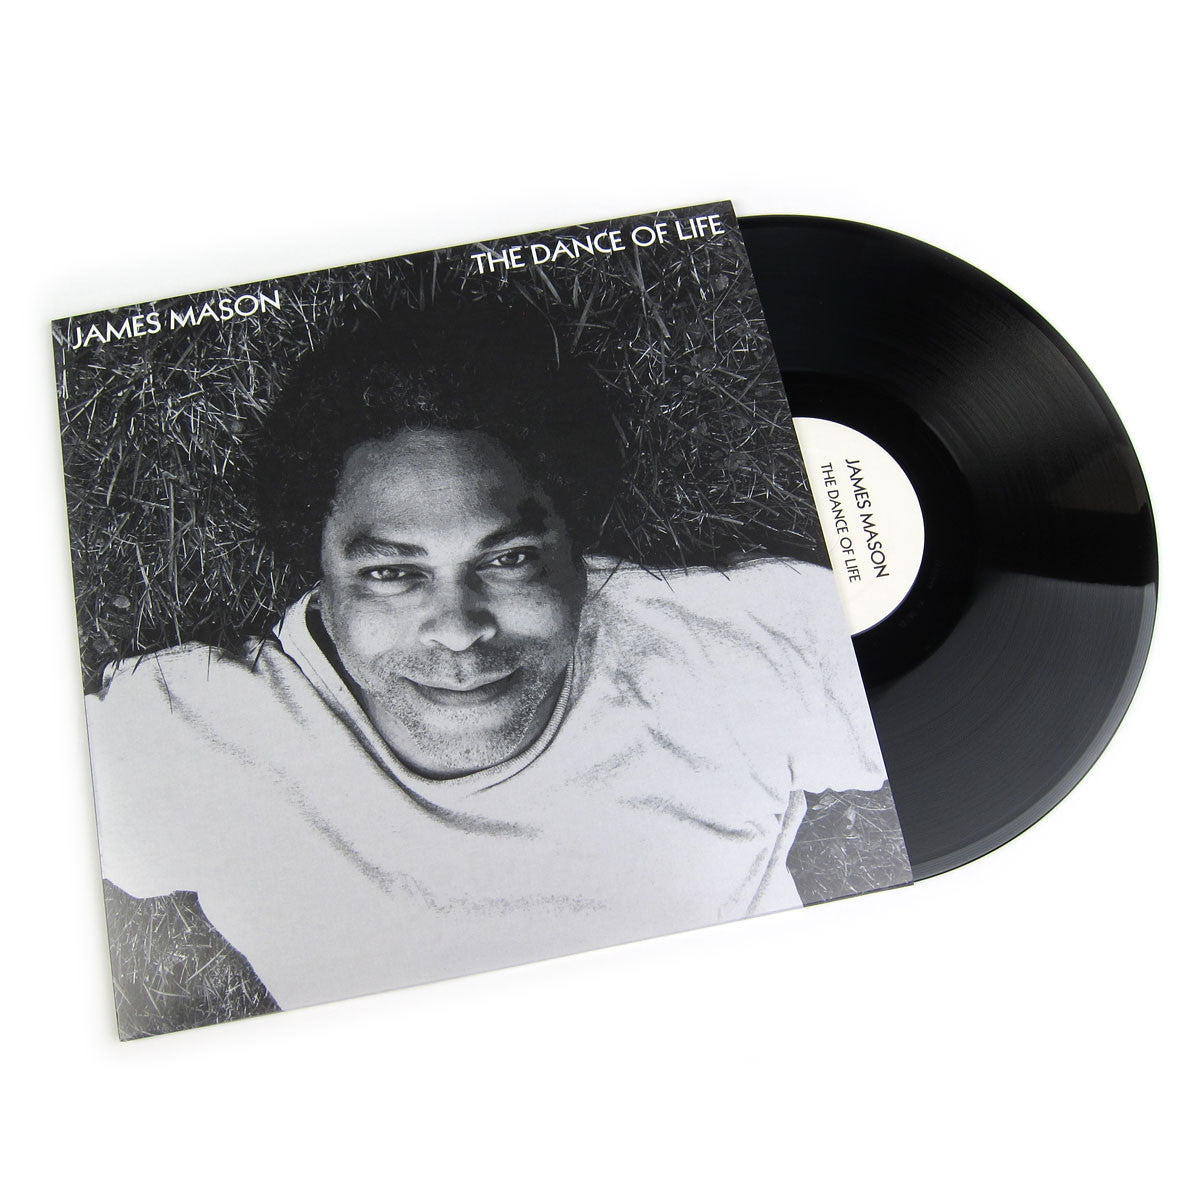 James Mason: The Dance Of Life Vinyl 12""